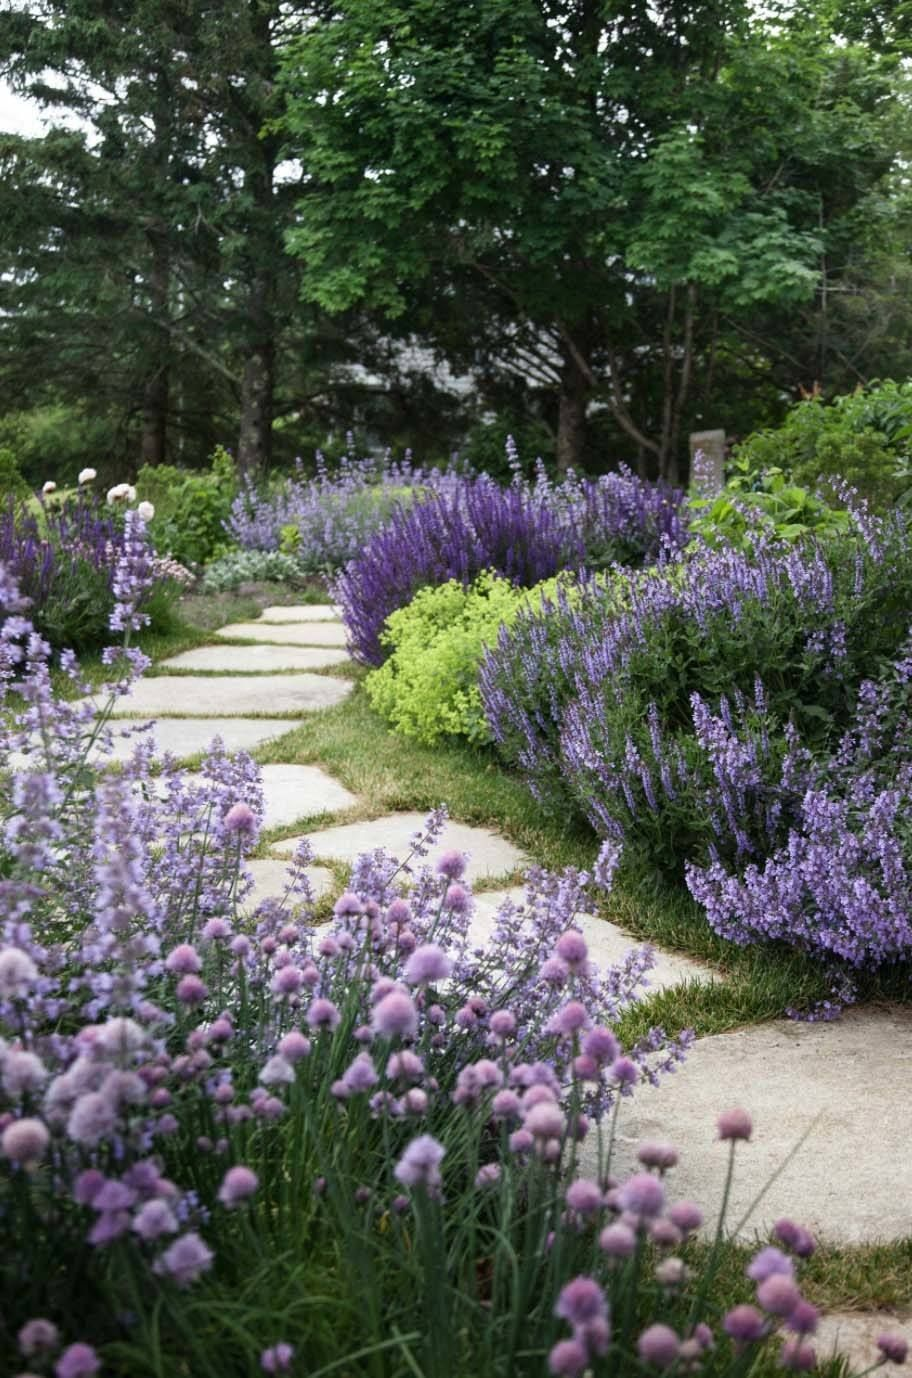 40 Brilliant ideas for stone pathways in your garden #gartengestaltungideen